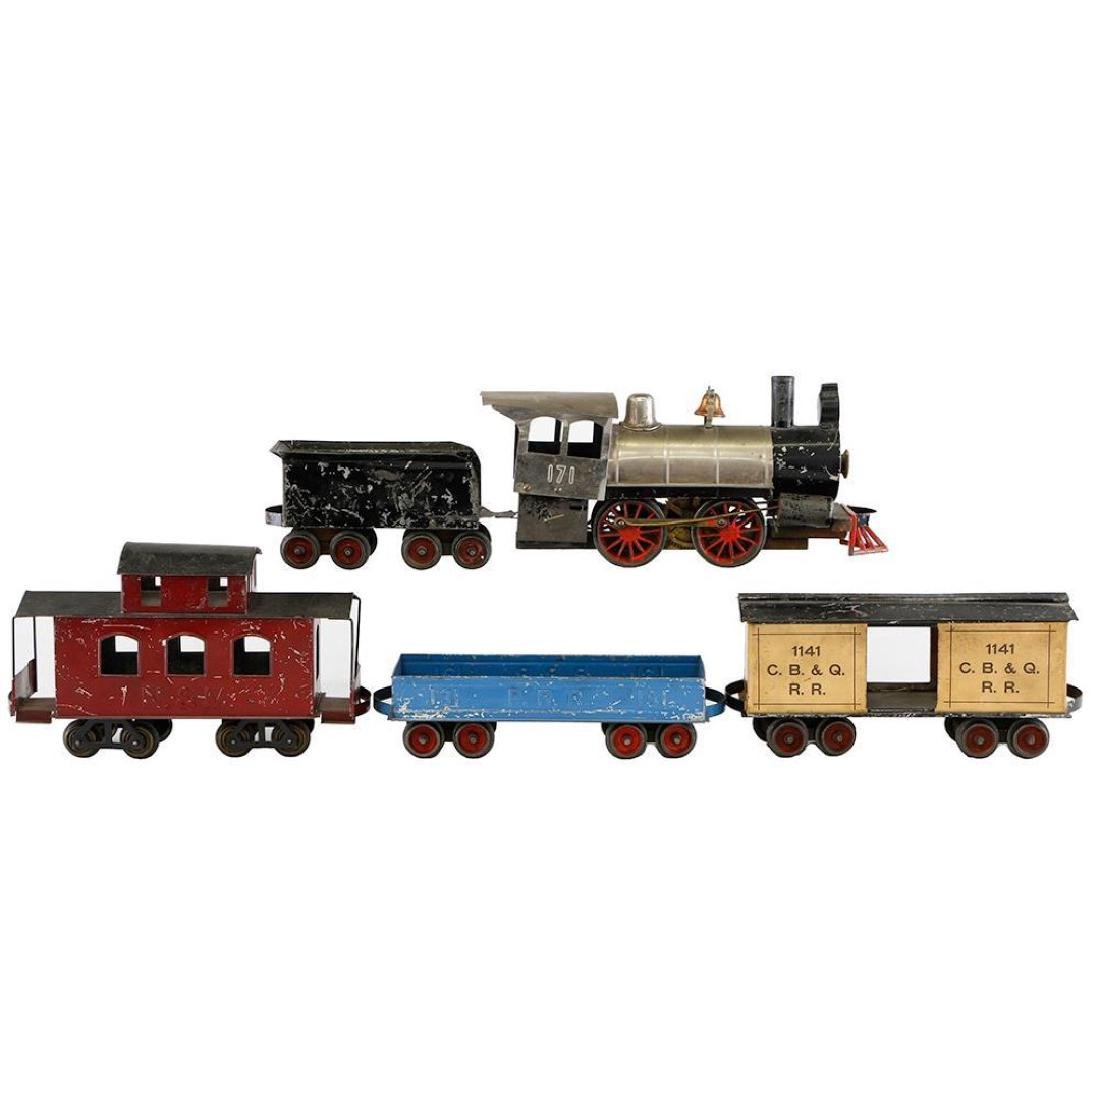 "Carlisle & Finch 2"" Steam Locomotive and Freight Set"